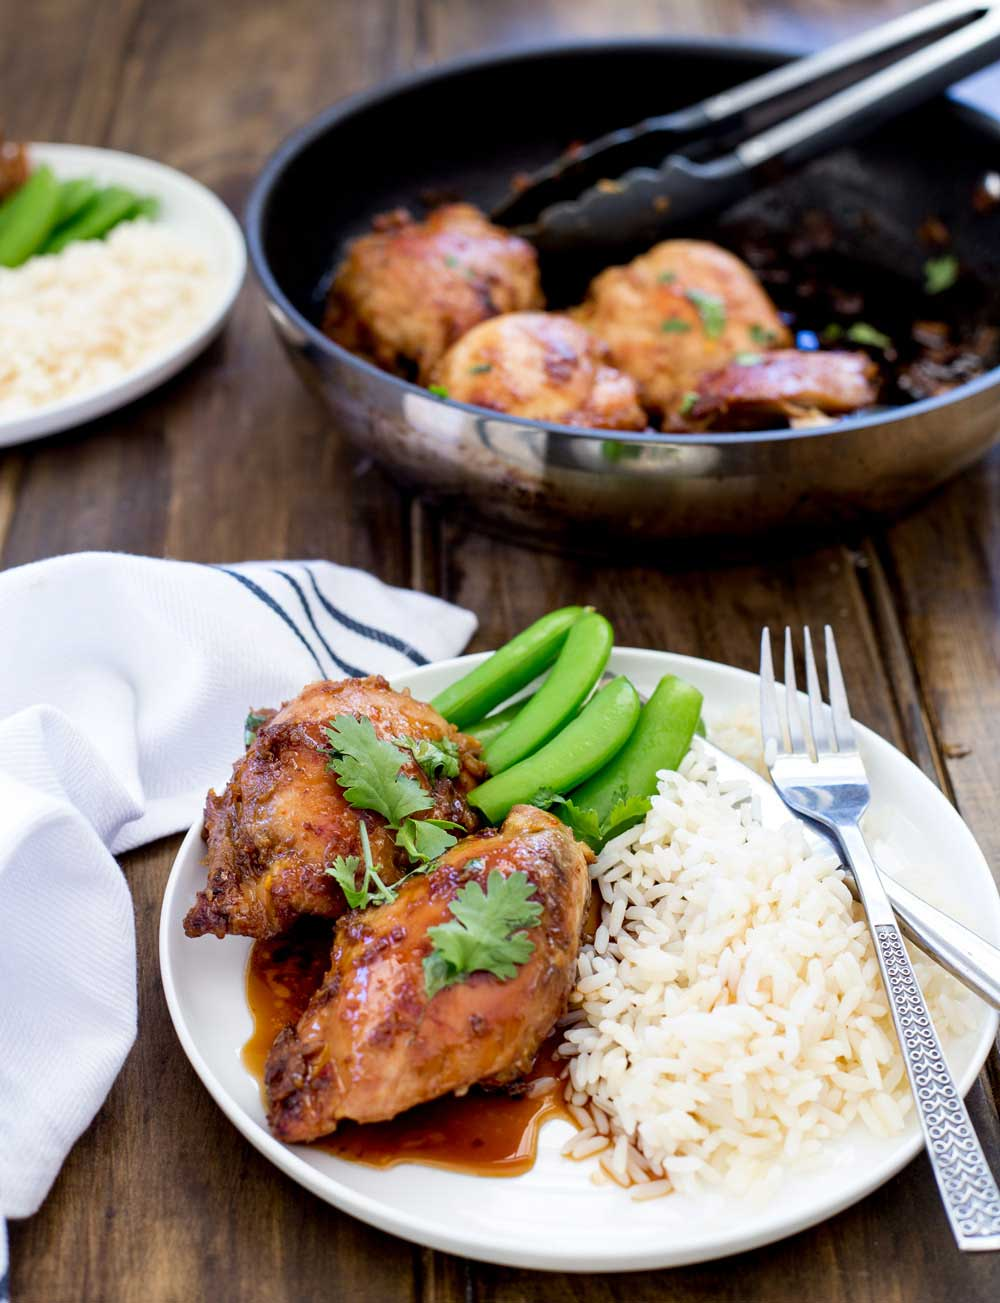 Sweet, spicy chicken with the hint of coconut and the simplicity of cooking it all in one pan on the hob. This is a delicious dinner, perfect for all the family. And it looks beautiful so you can happily serve it to guests.